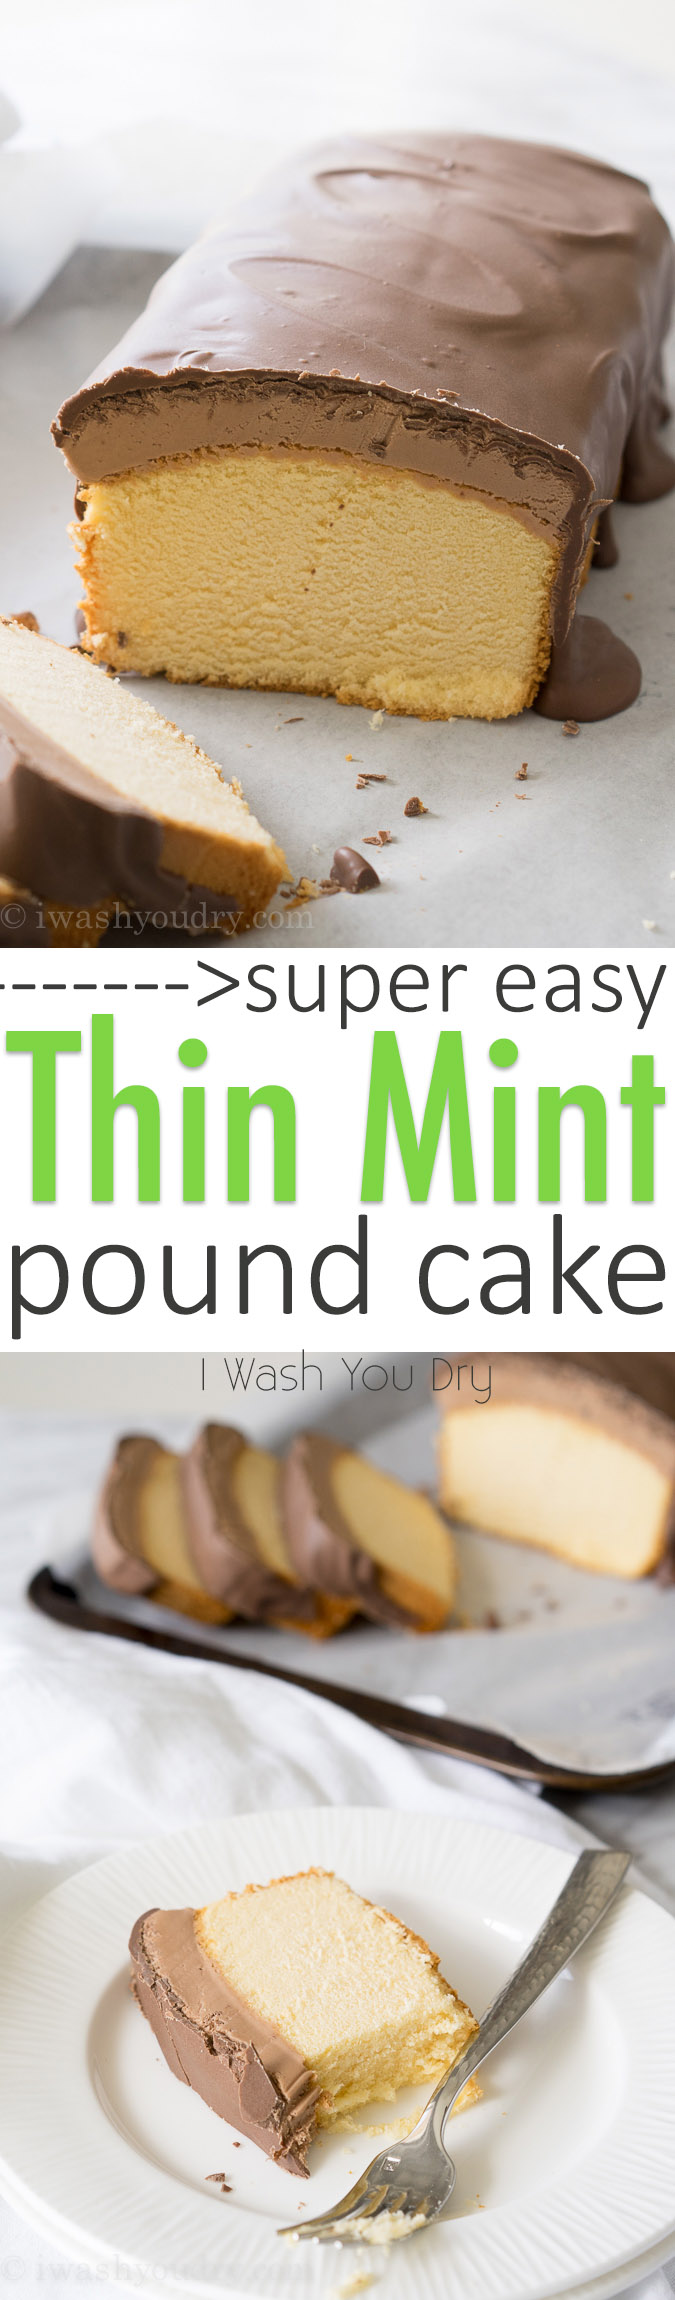 Extra easy and fine mint cake! It takes only 10 minutes to make and it tastes VERY good! Definitely doing this again!